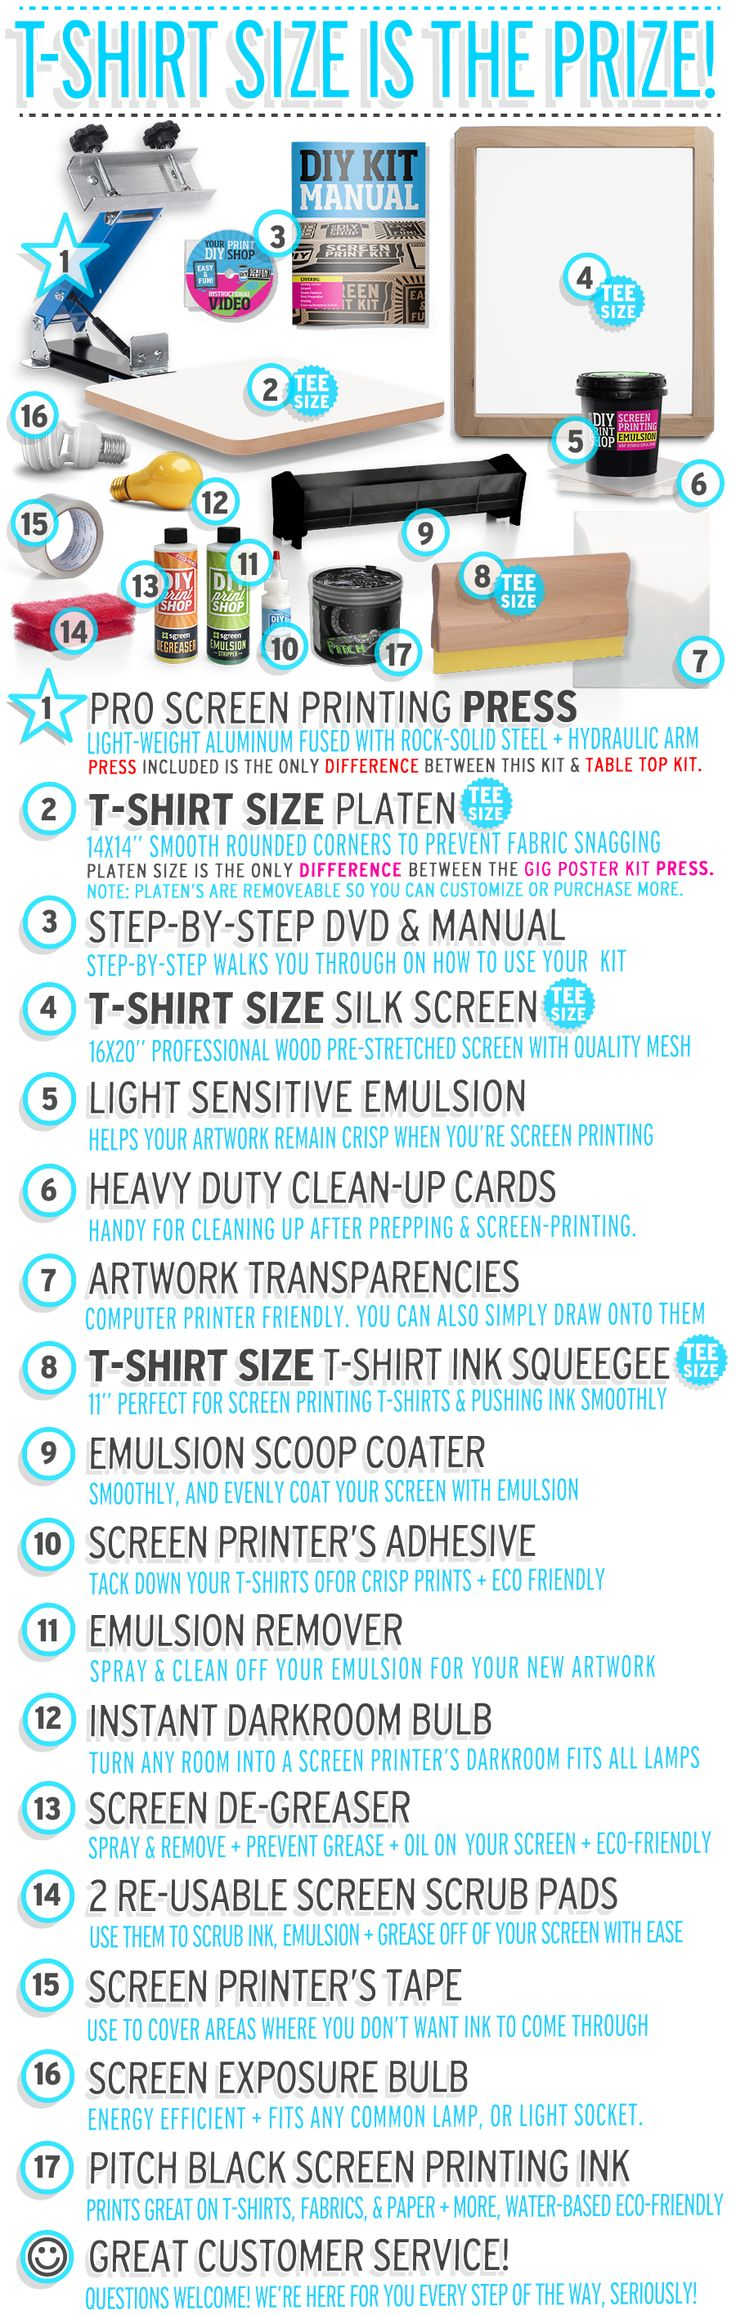 98 best DIY Kits Screen Printing images on Pinterest | Arts and ...